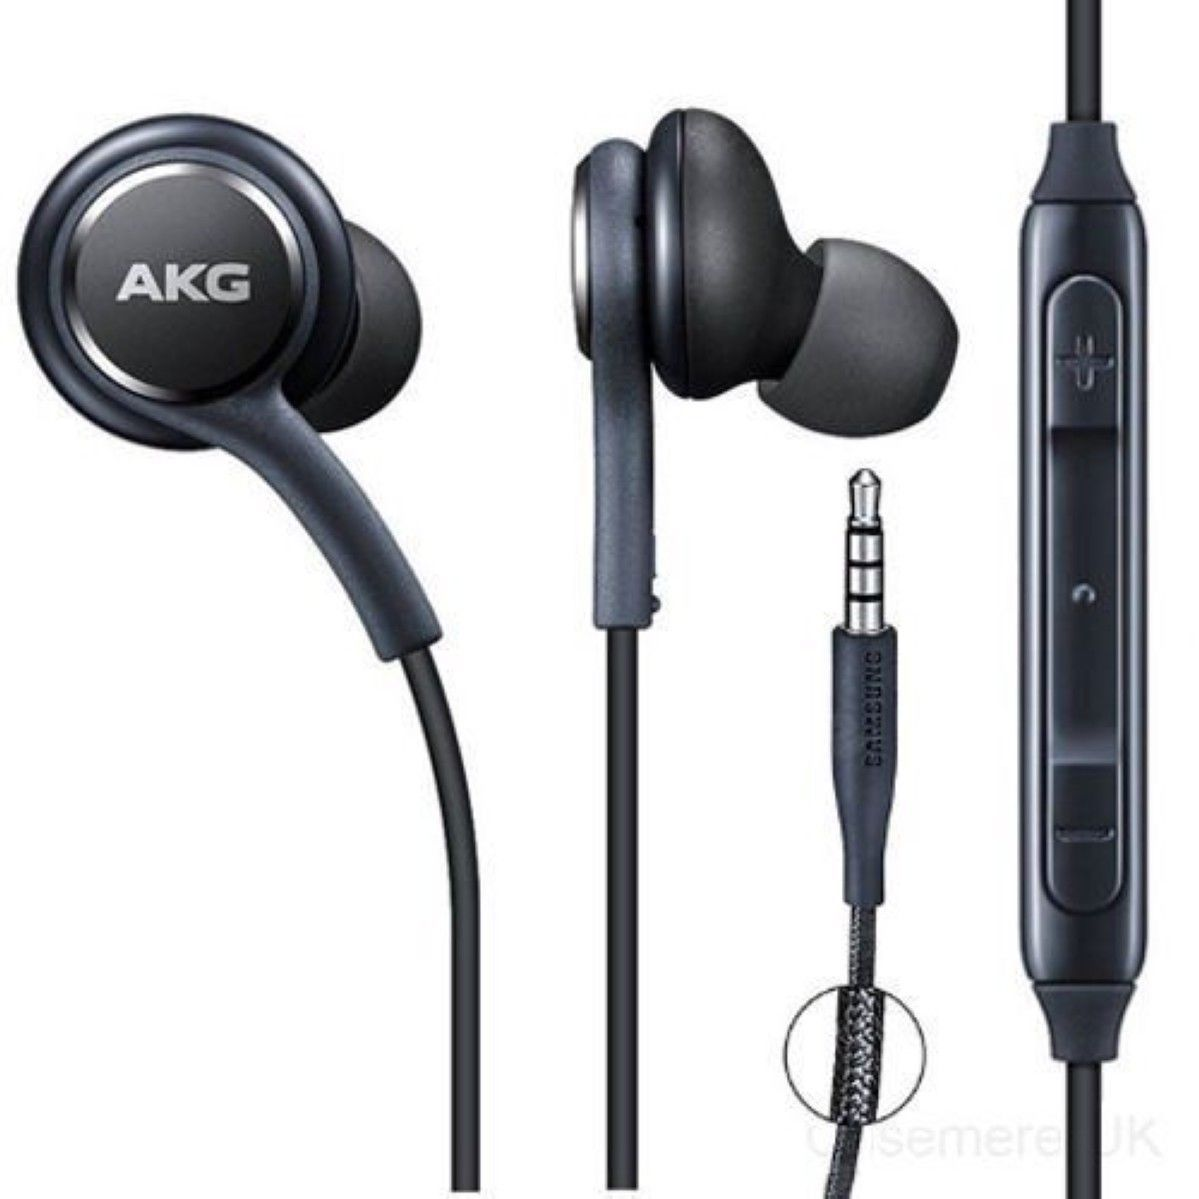 oem samsung akg earphones headphones headset galaxy s6 s7. Black Bedroom Furniture Sets. Home Design Ideas